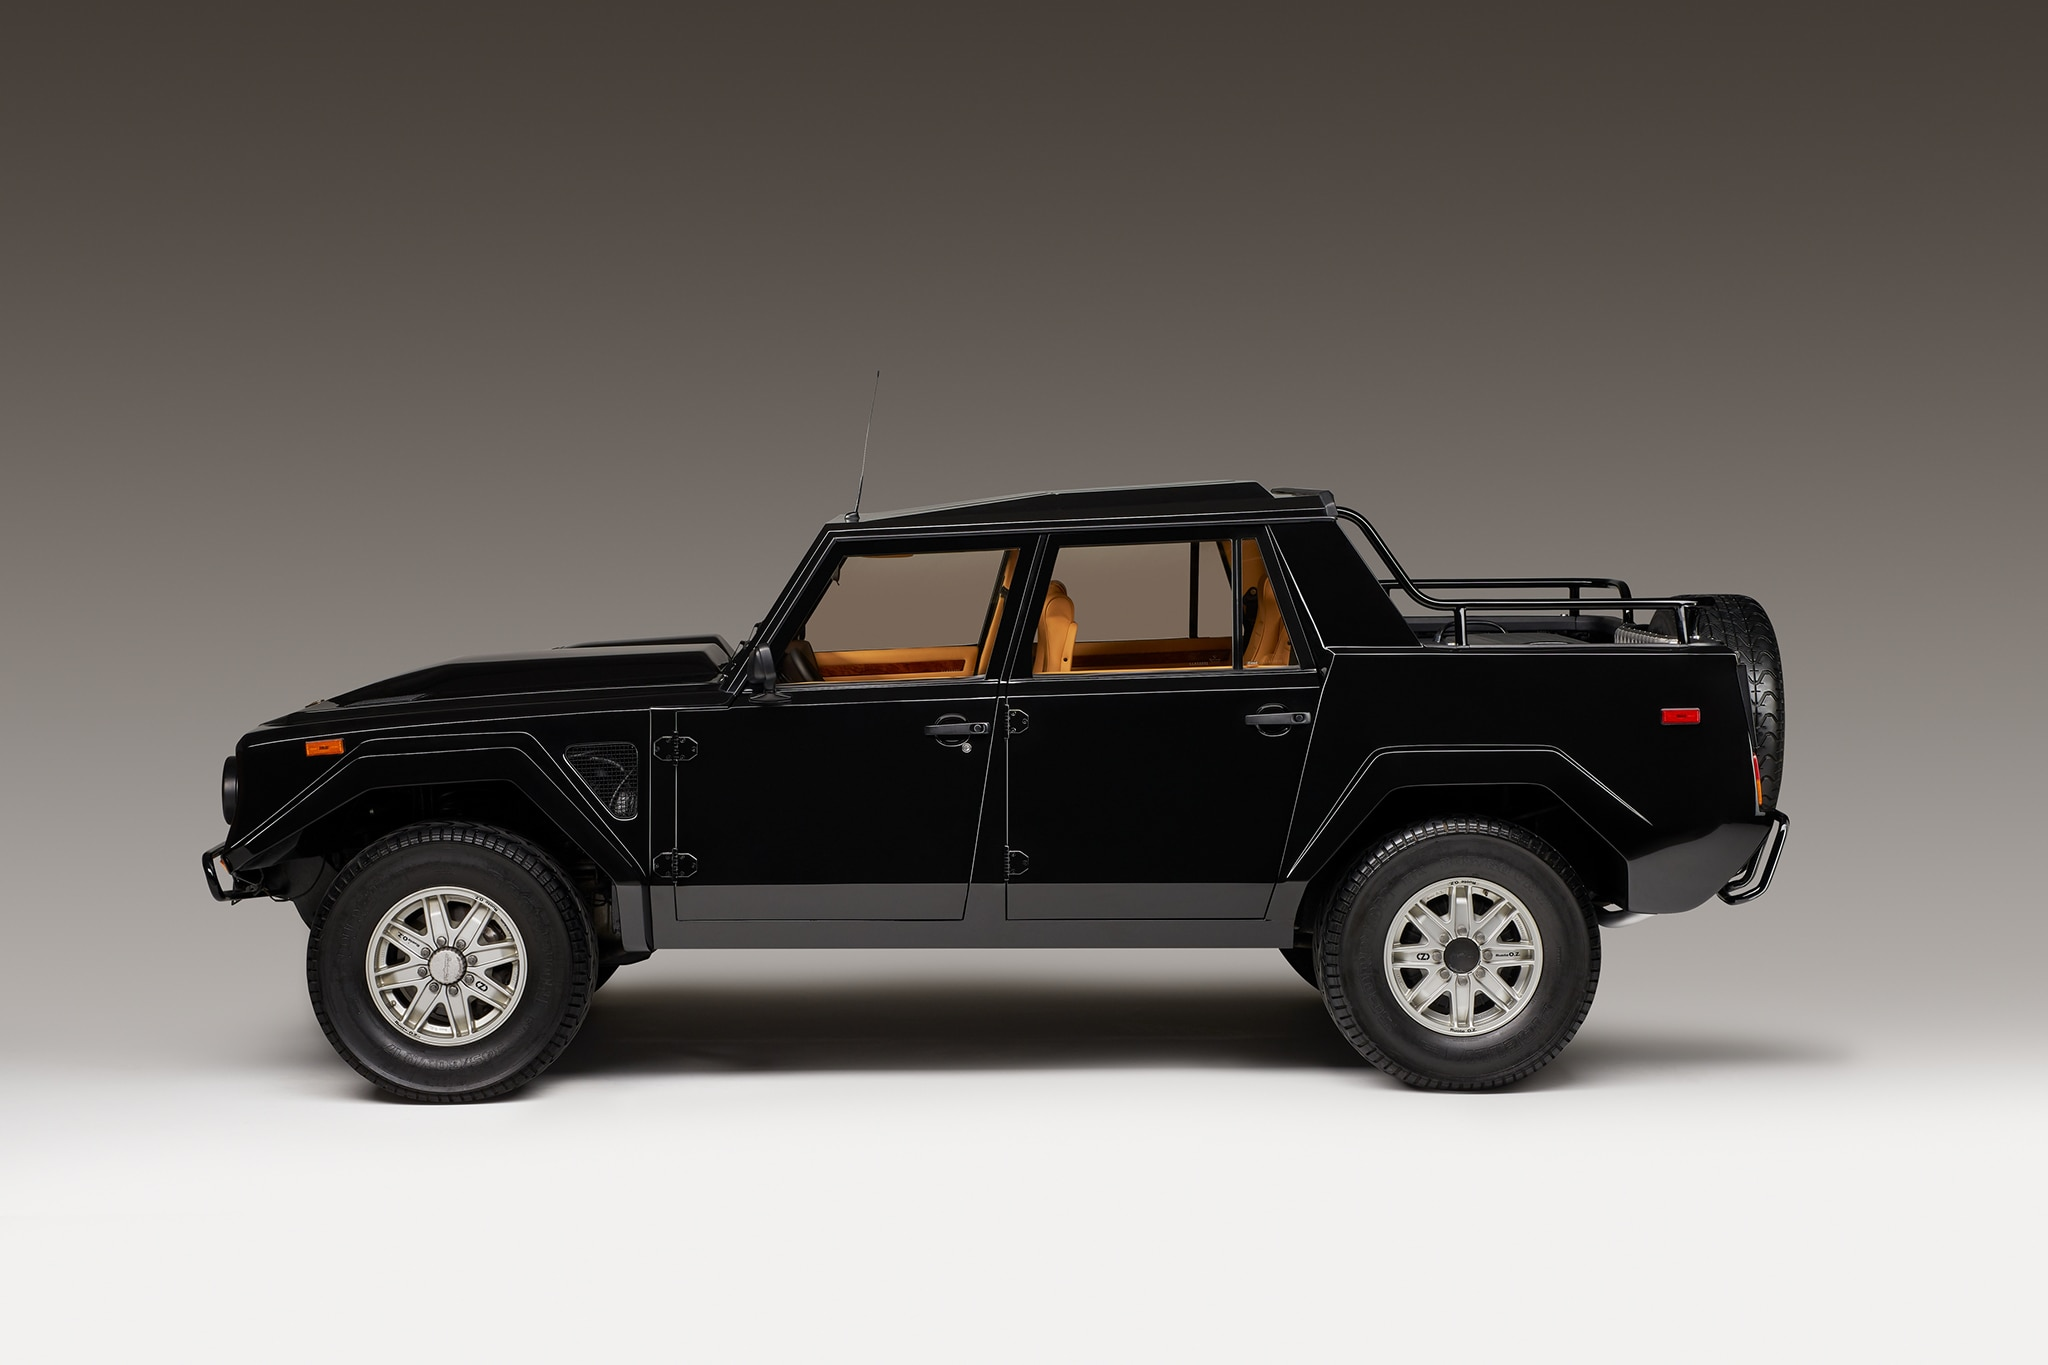 Suv Lamborghini >> 1986-1993 Lamborghini LM002 - Luxury SUV Review - Automobile Magazine